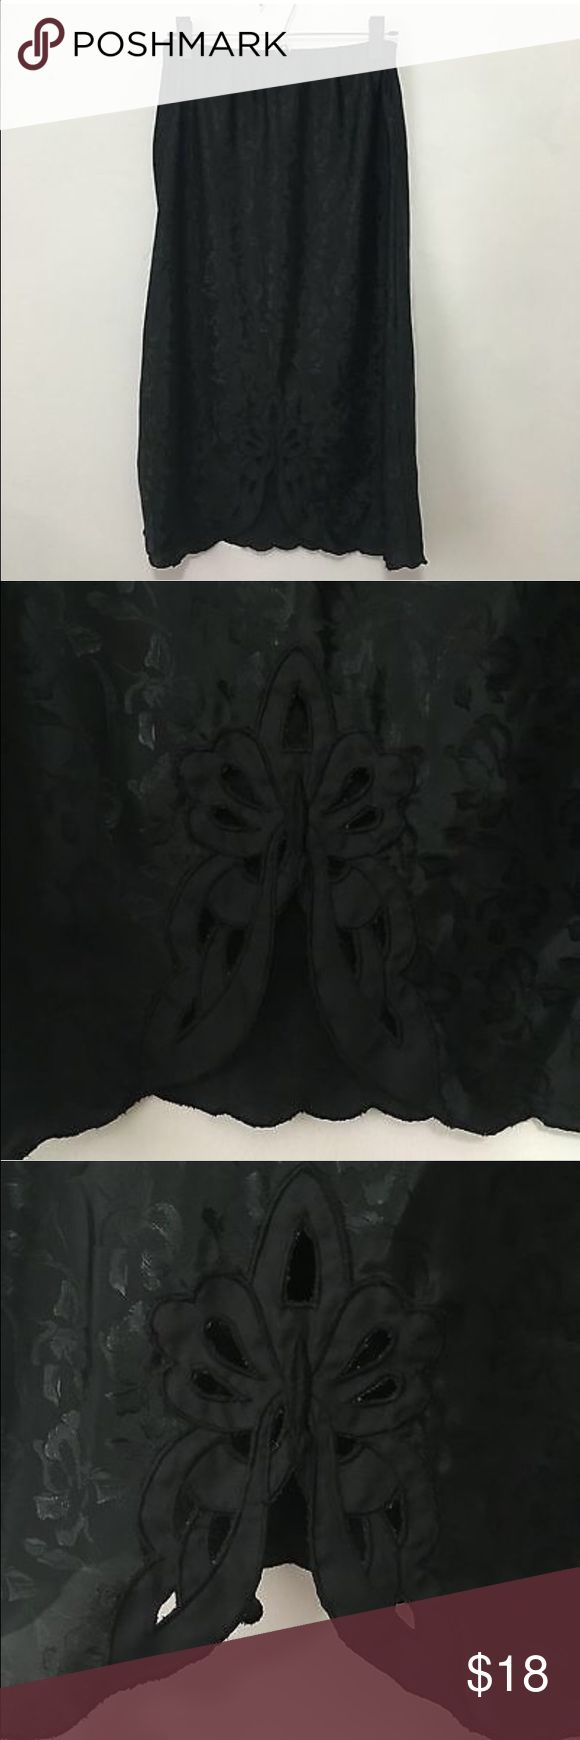 """Vintage Black Jacquard Floral Midi Half Slip Skirt Vintage Black Jacquard Floral Midi Half Slip Skirt M <<<<<<<<<<<<<<<<<<<<<<<<<<<<<<<<<<<<<<<<  good condition, no stains or holes  polyester jacquard floral fabric cut out lace detail at front hem  Size M 28"""" long 12"""" across waist laying flat 21"""" across hip laying flat Vintage Skirts Midi"""